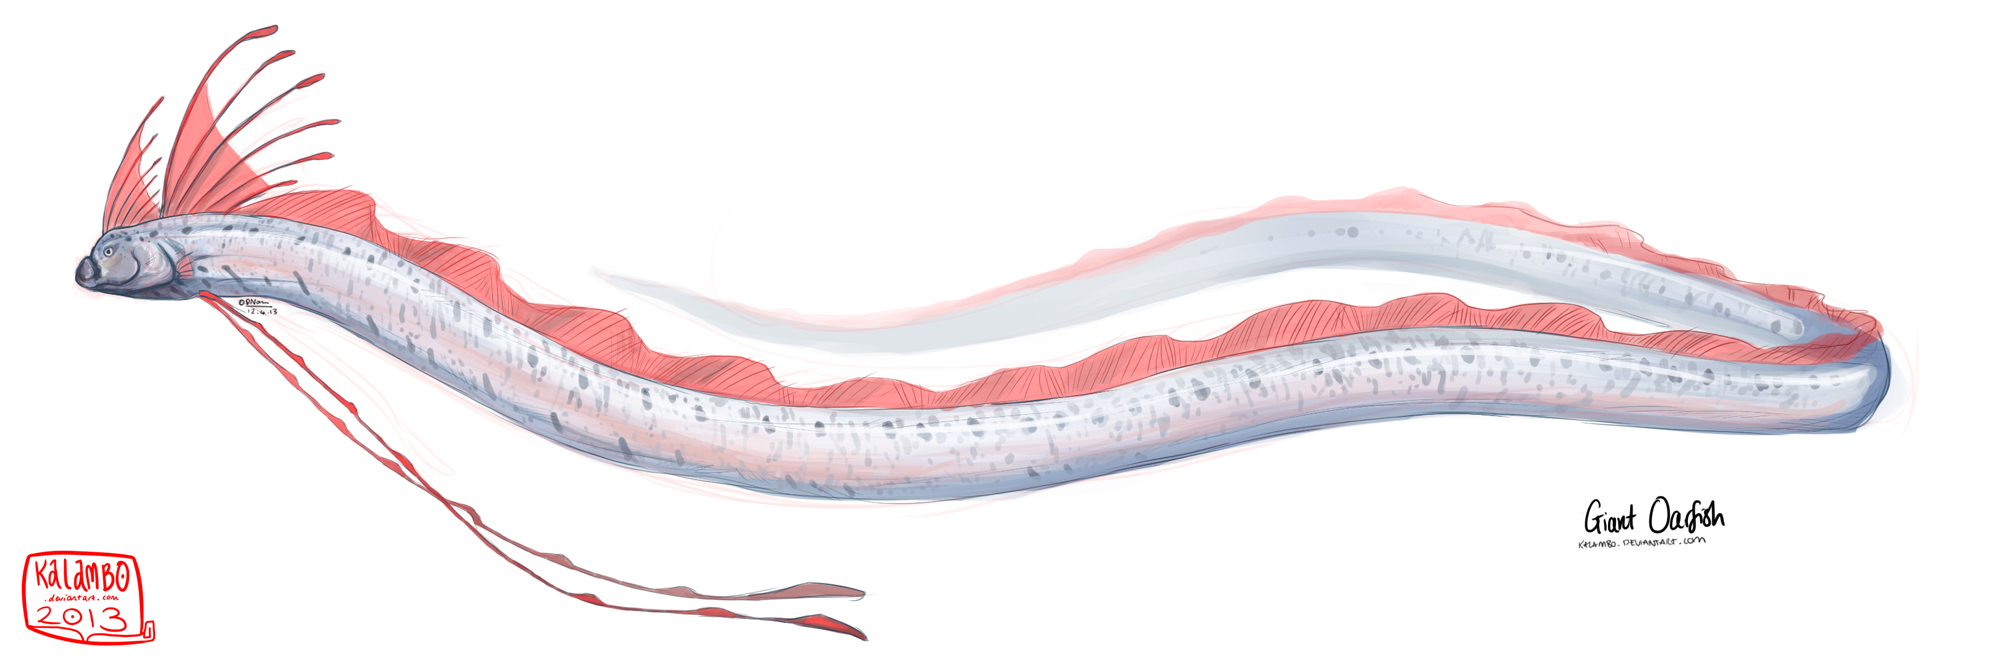 giant_oarfish_by_kalambo-d61gtzf.jpg